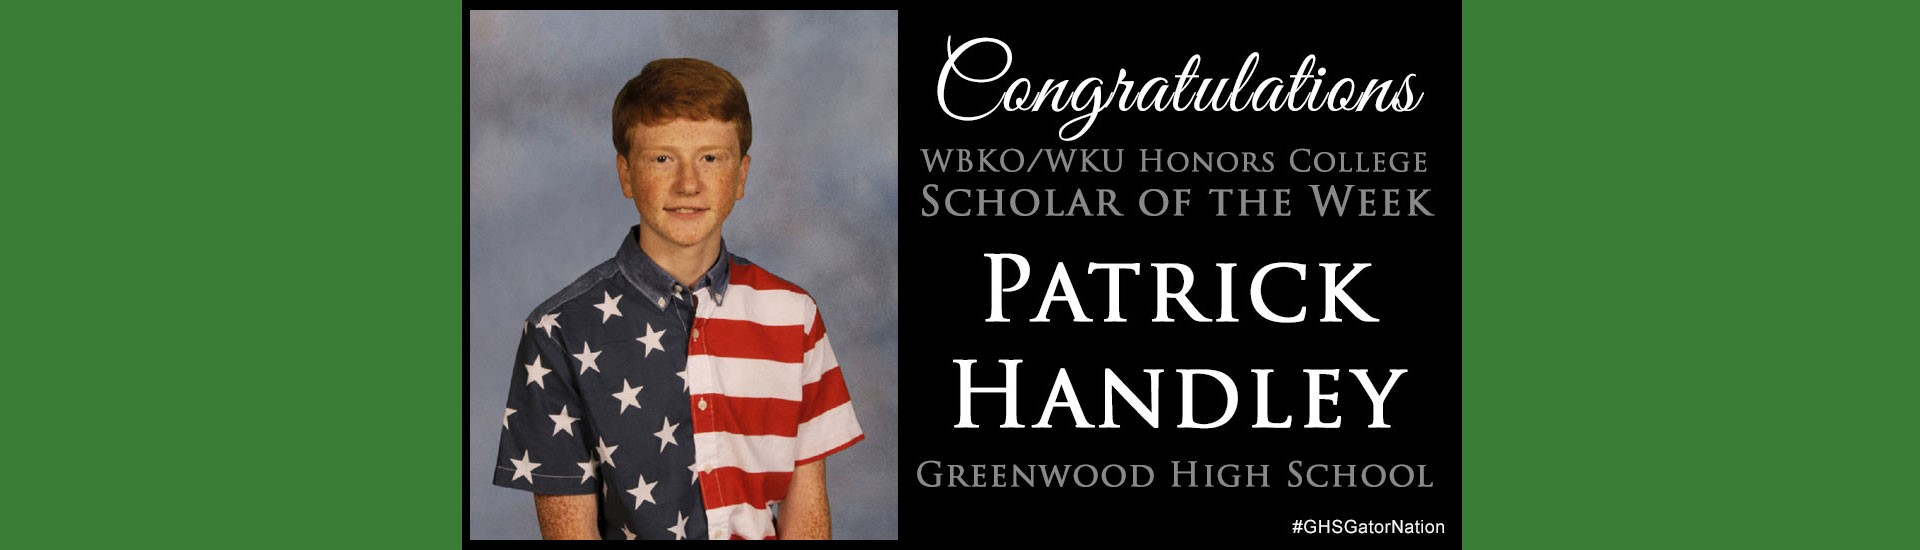 Patrick Handley Scholar of the Week